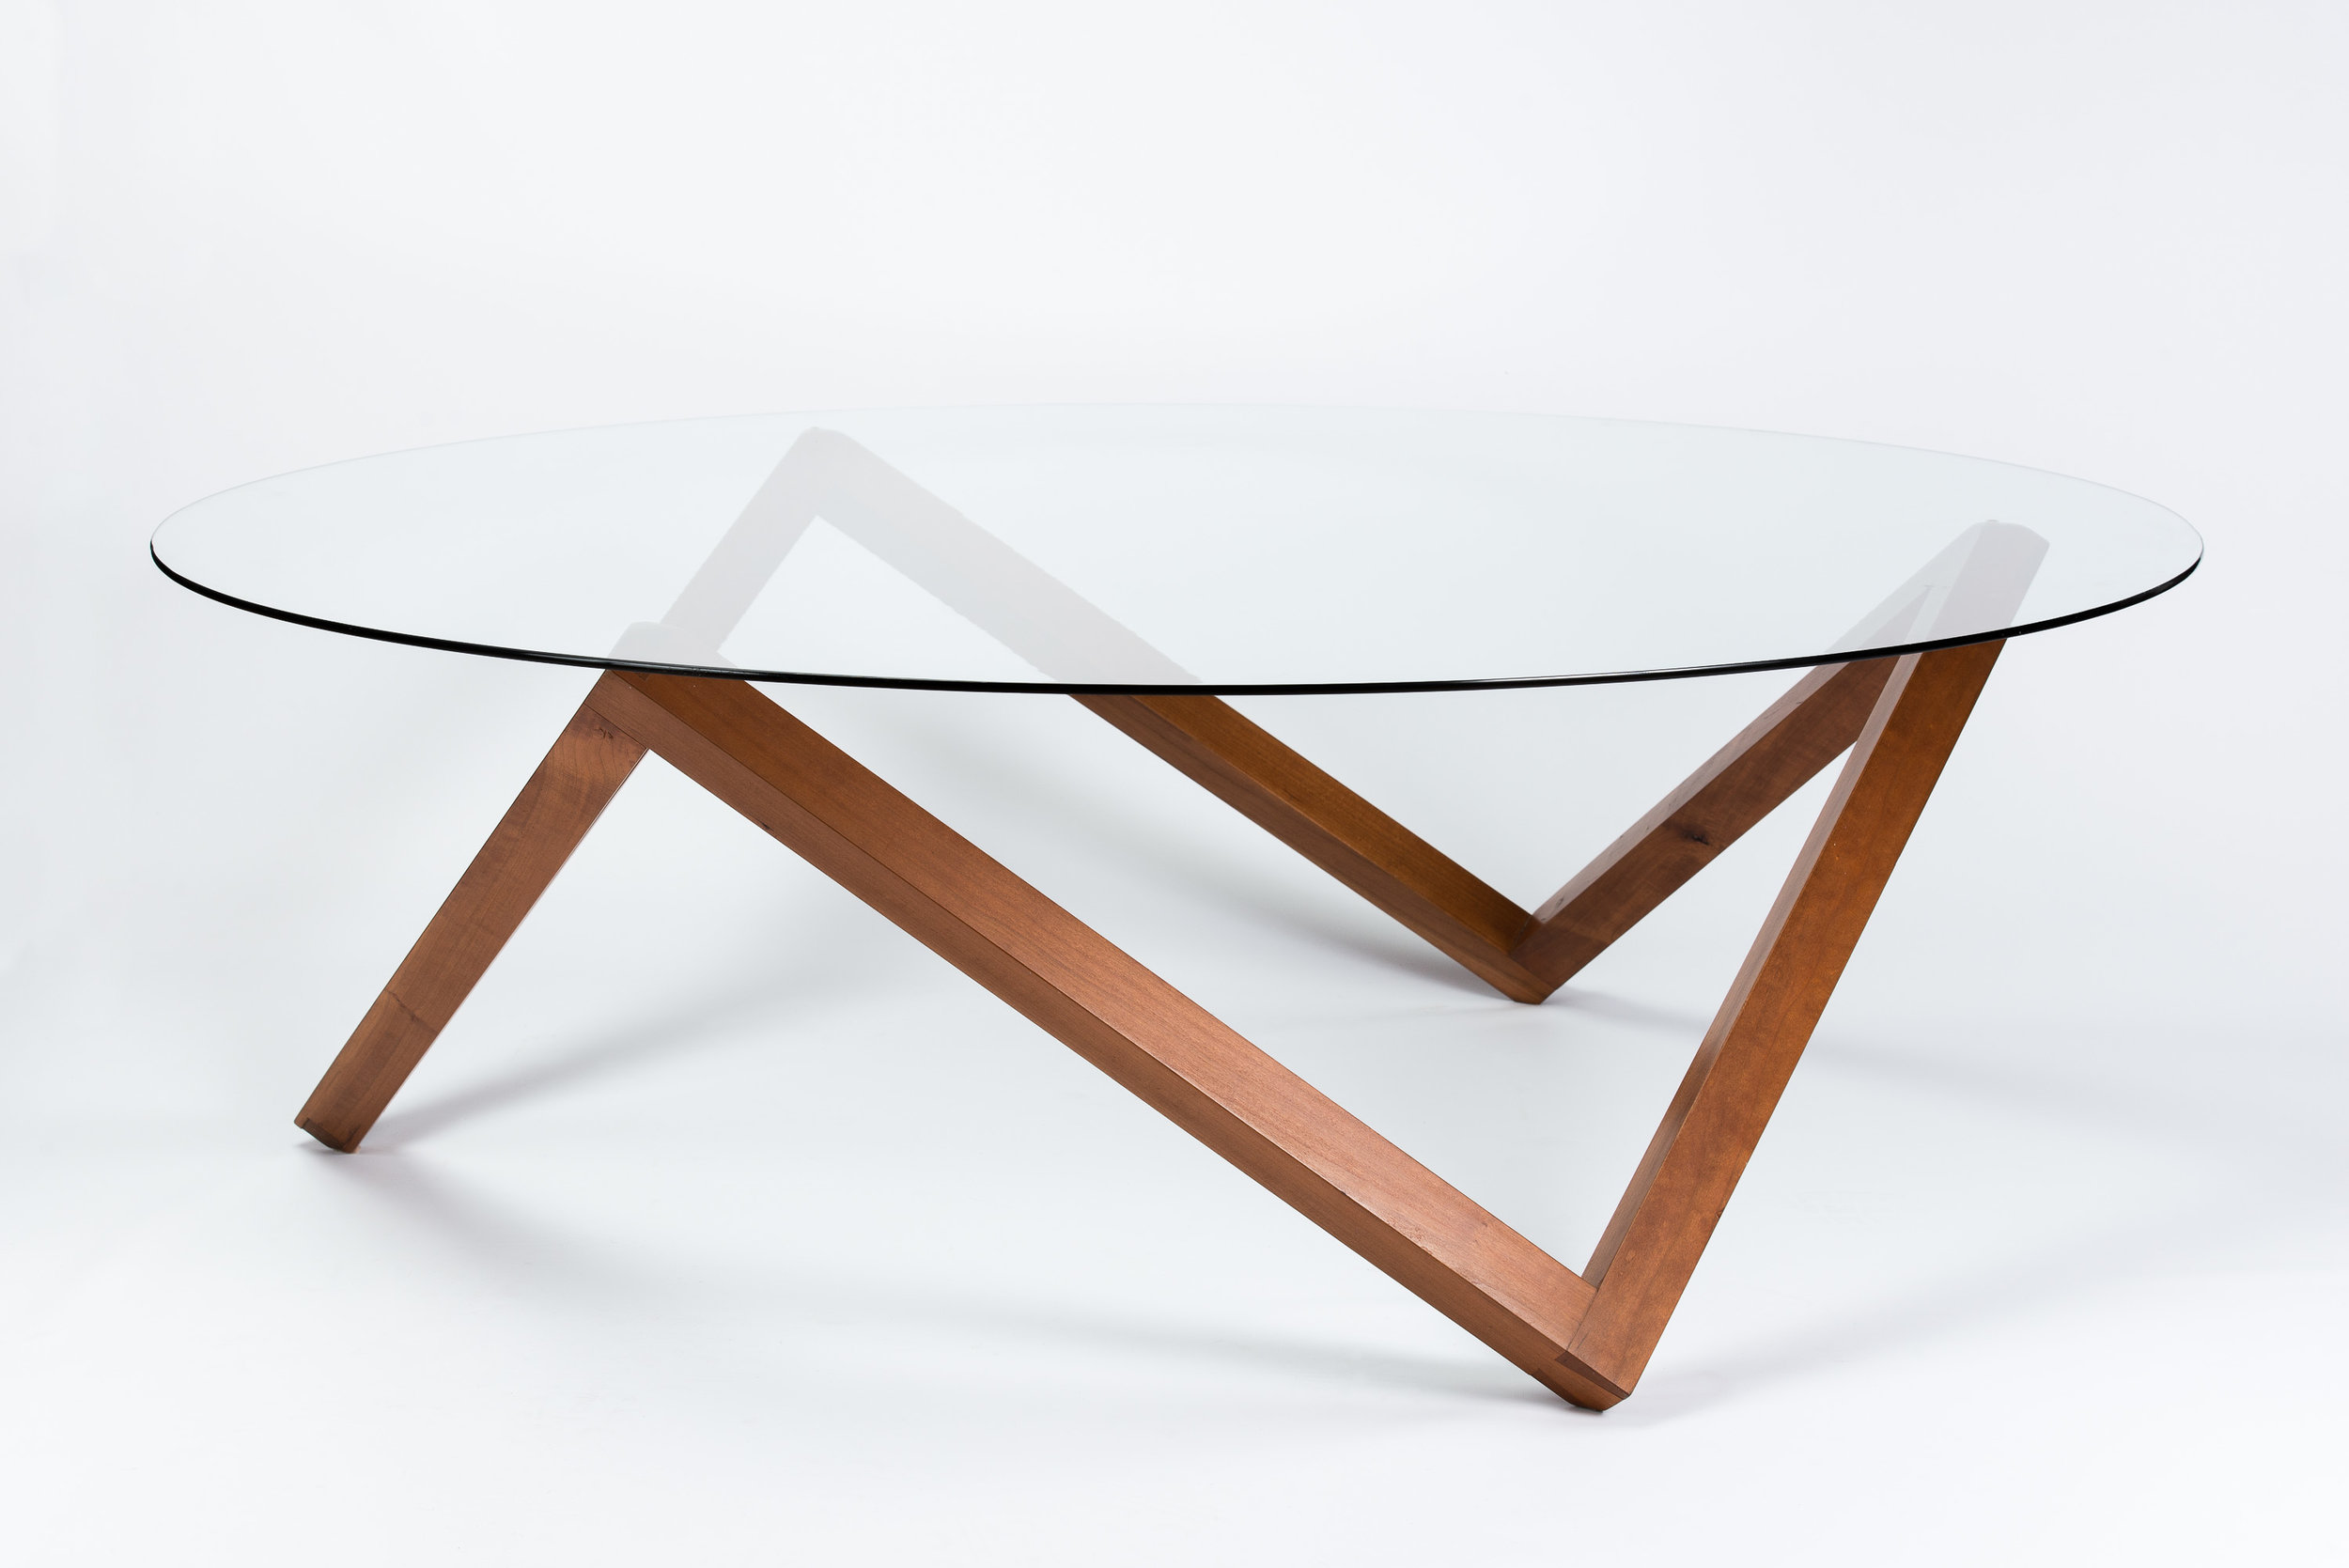 Prism Coffee Table can be viewed at Superbrands London stand 98